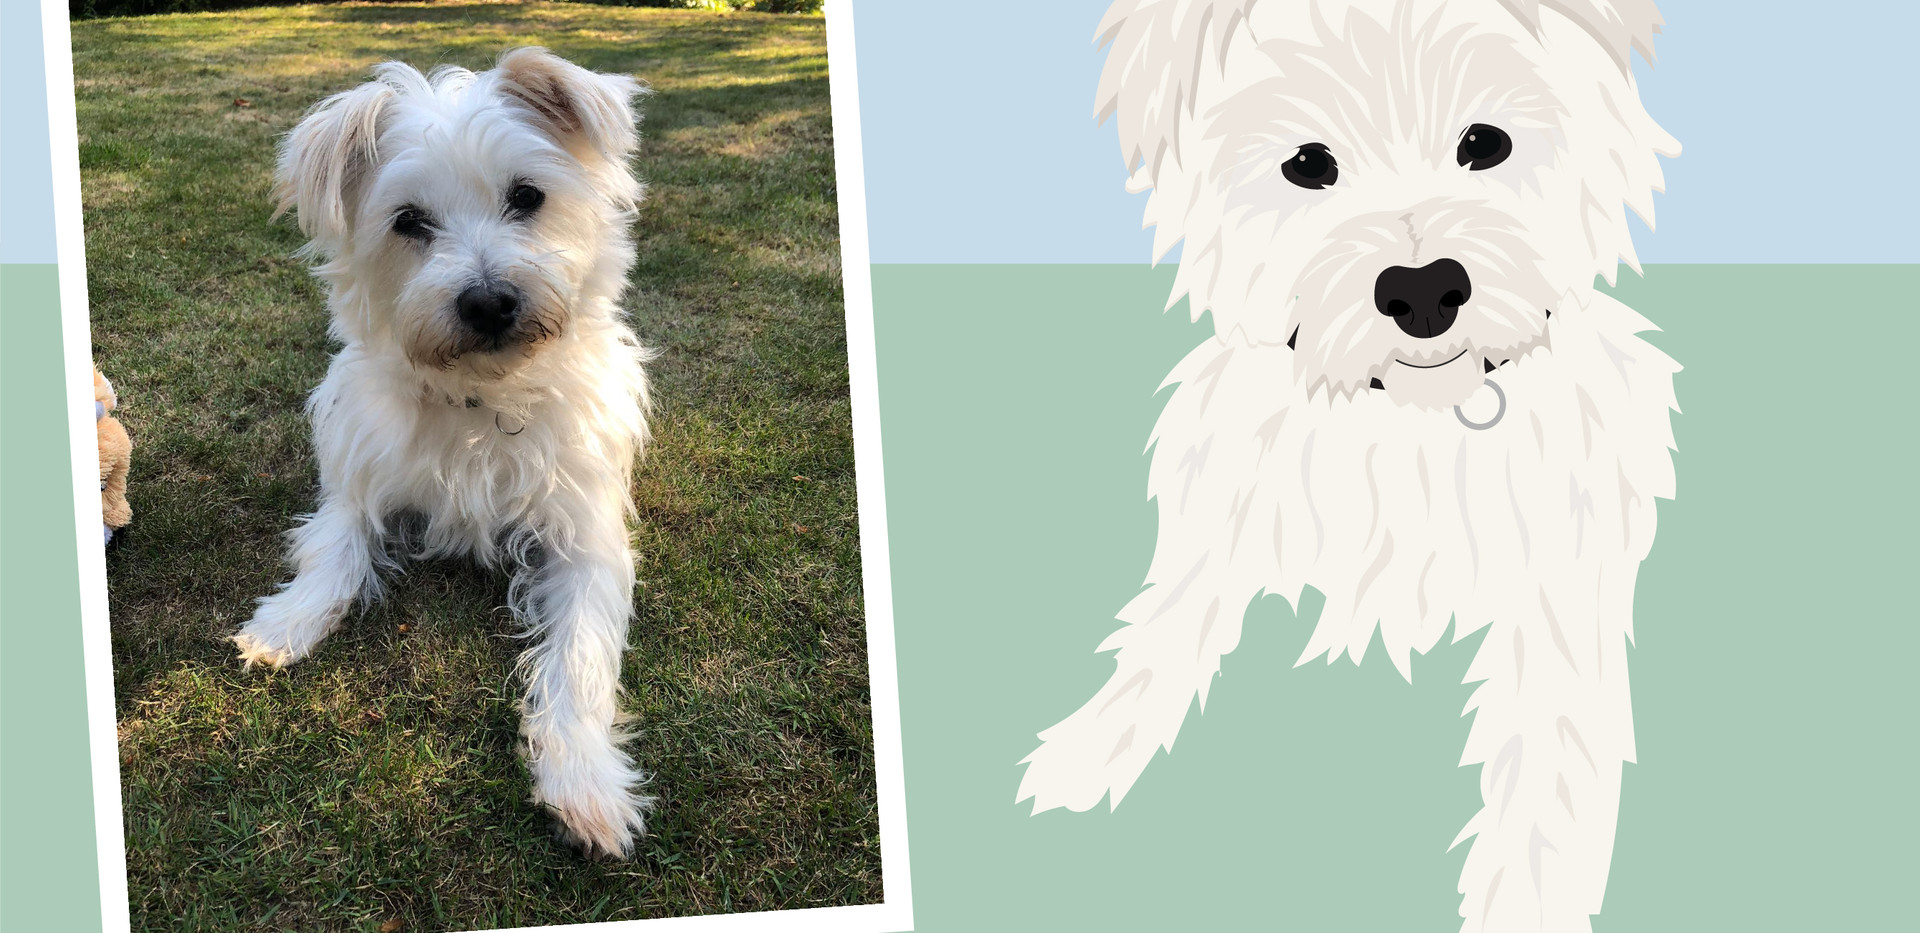 Pet portrait wix layout-03.jpg